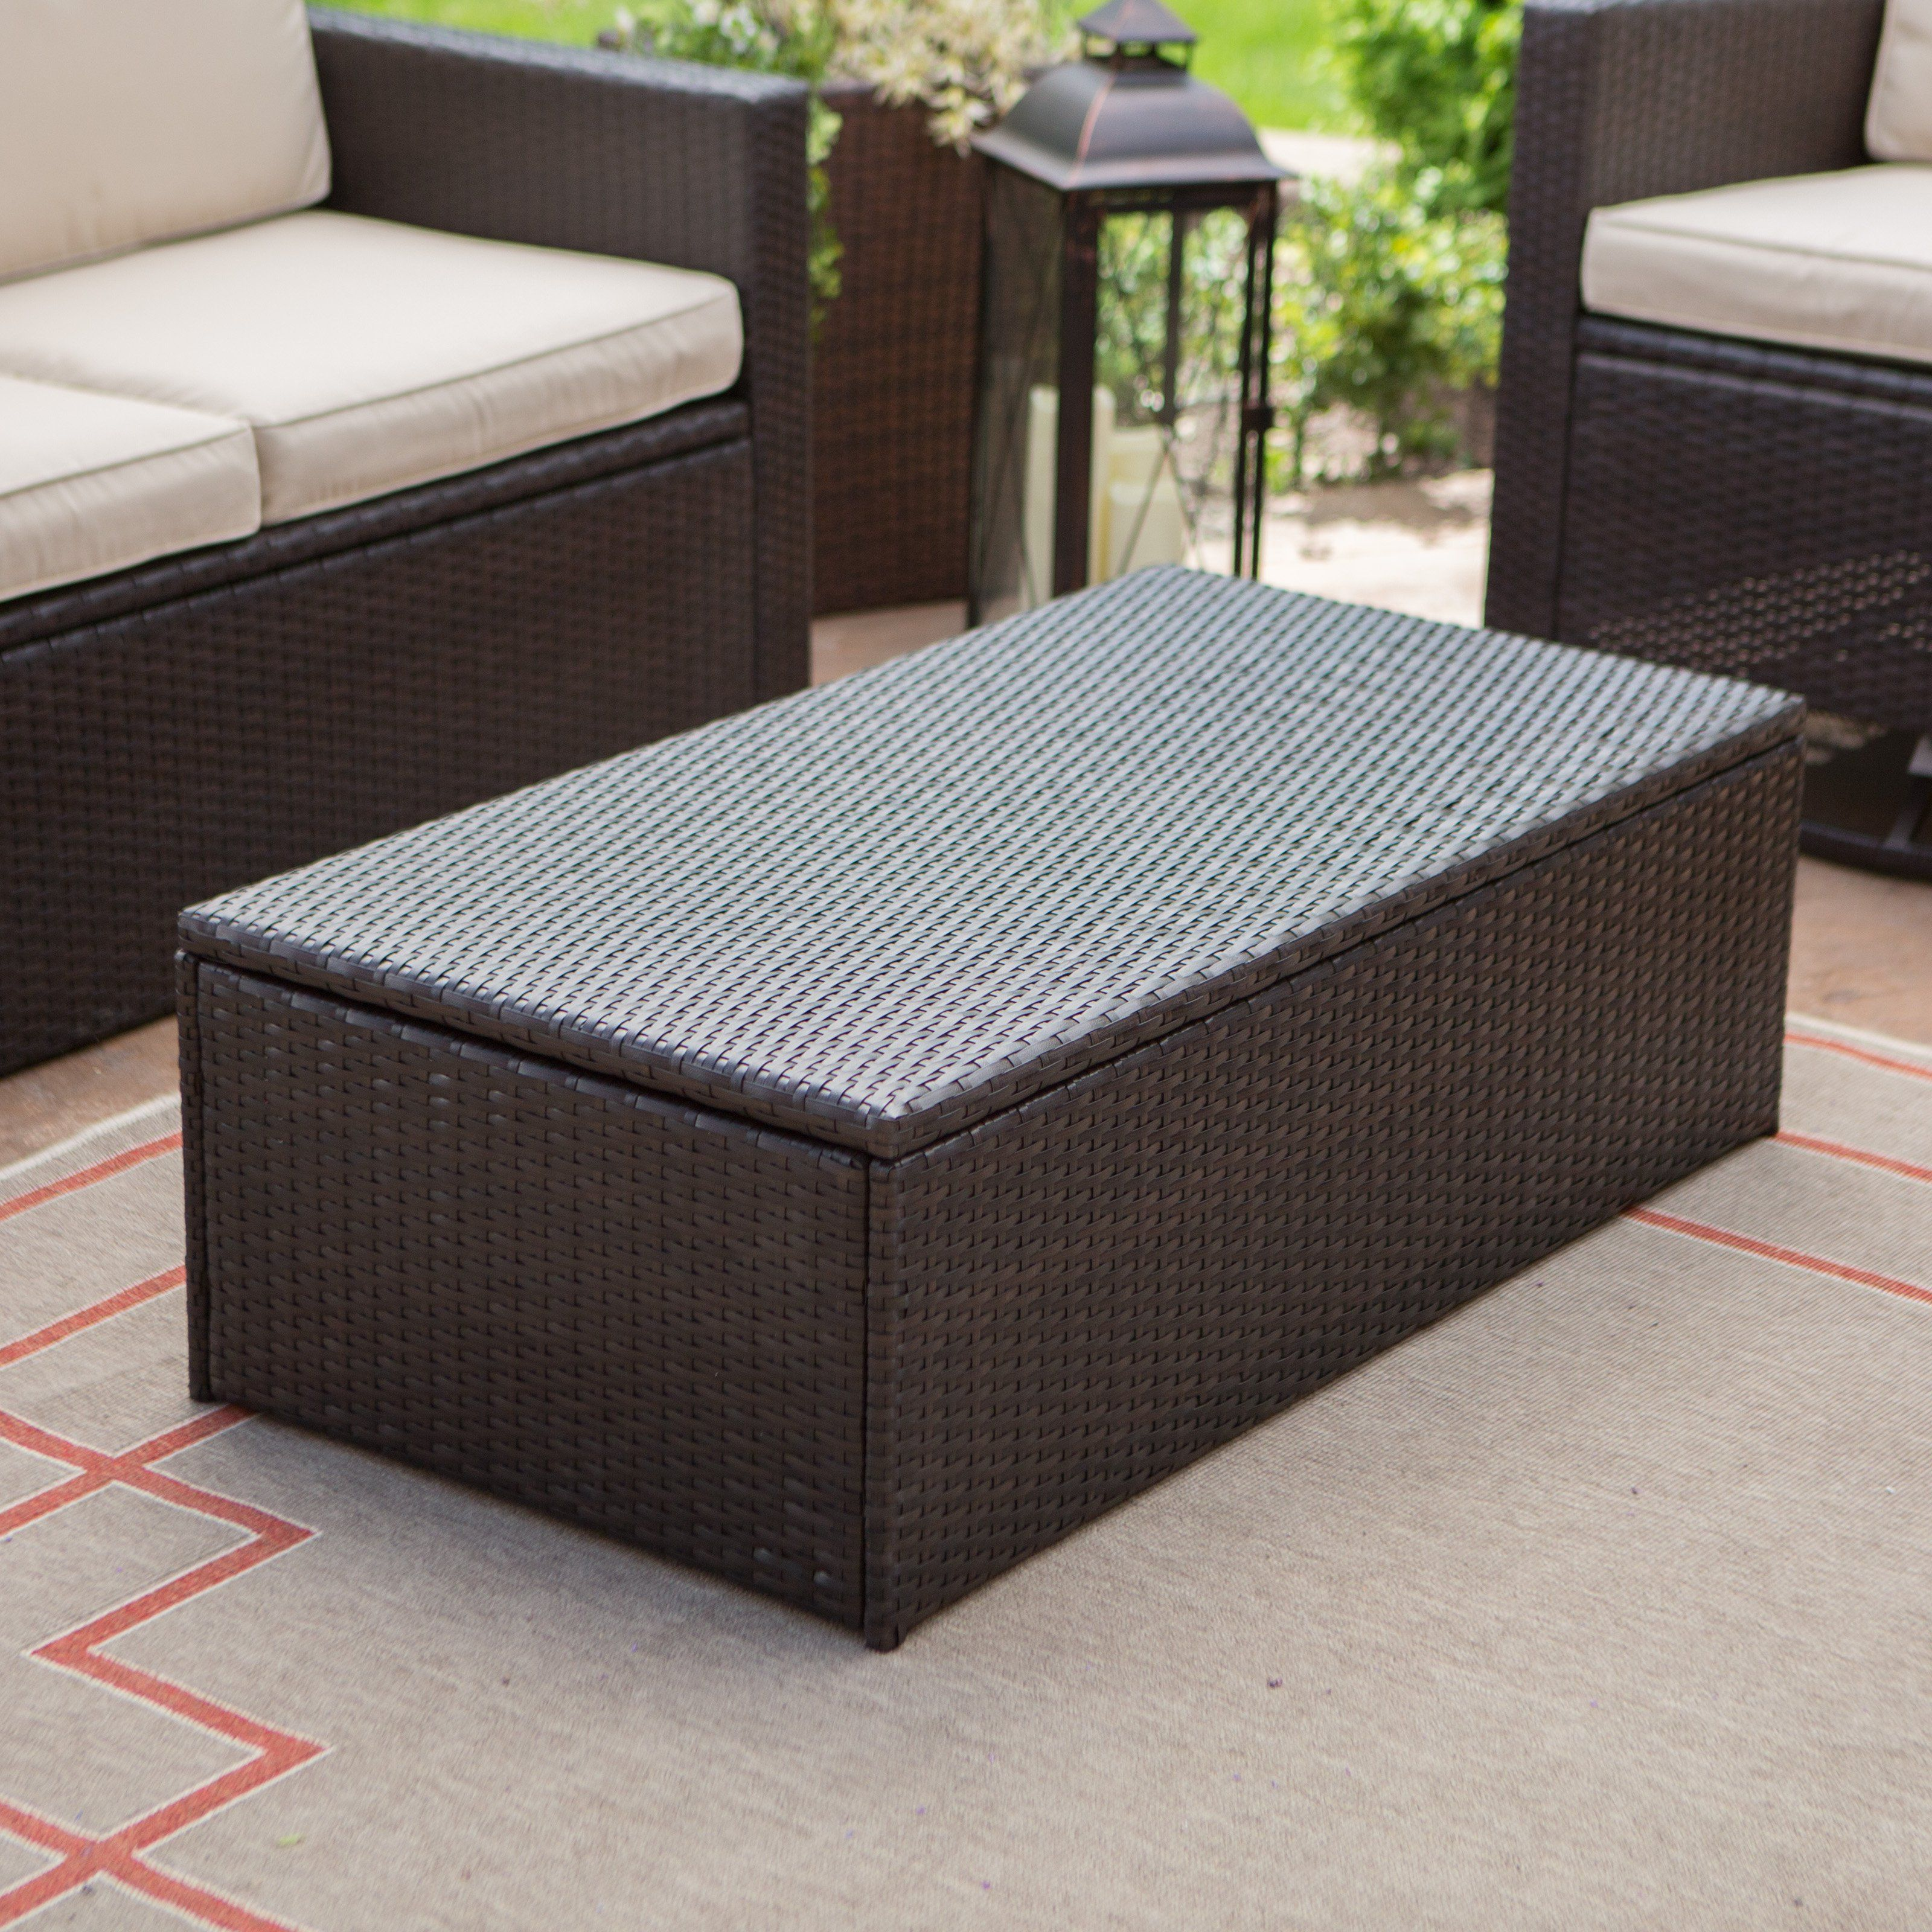 coral coast berea outdoor wicker storage coffee table the coral